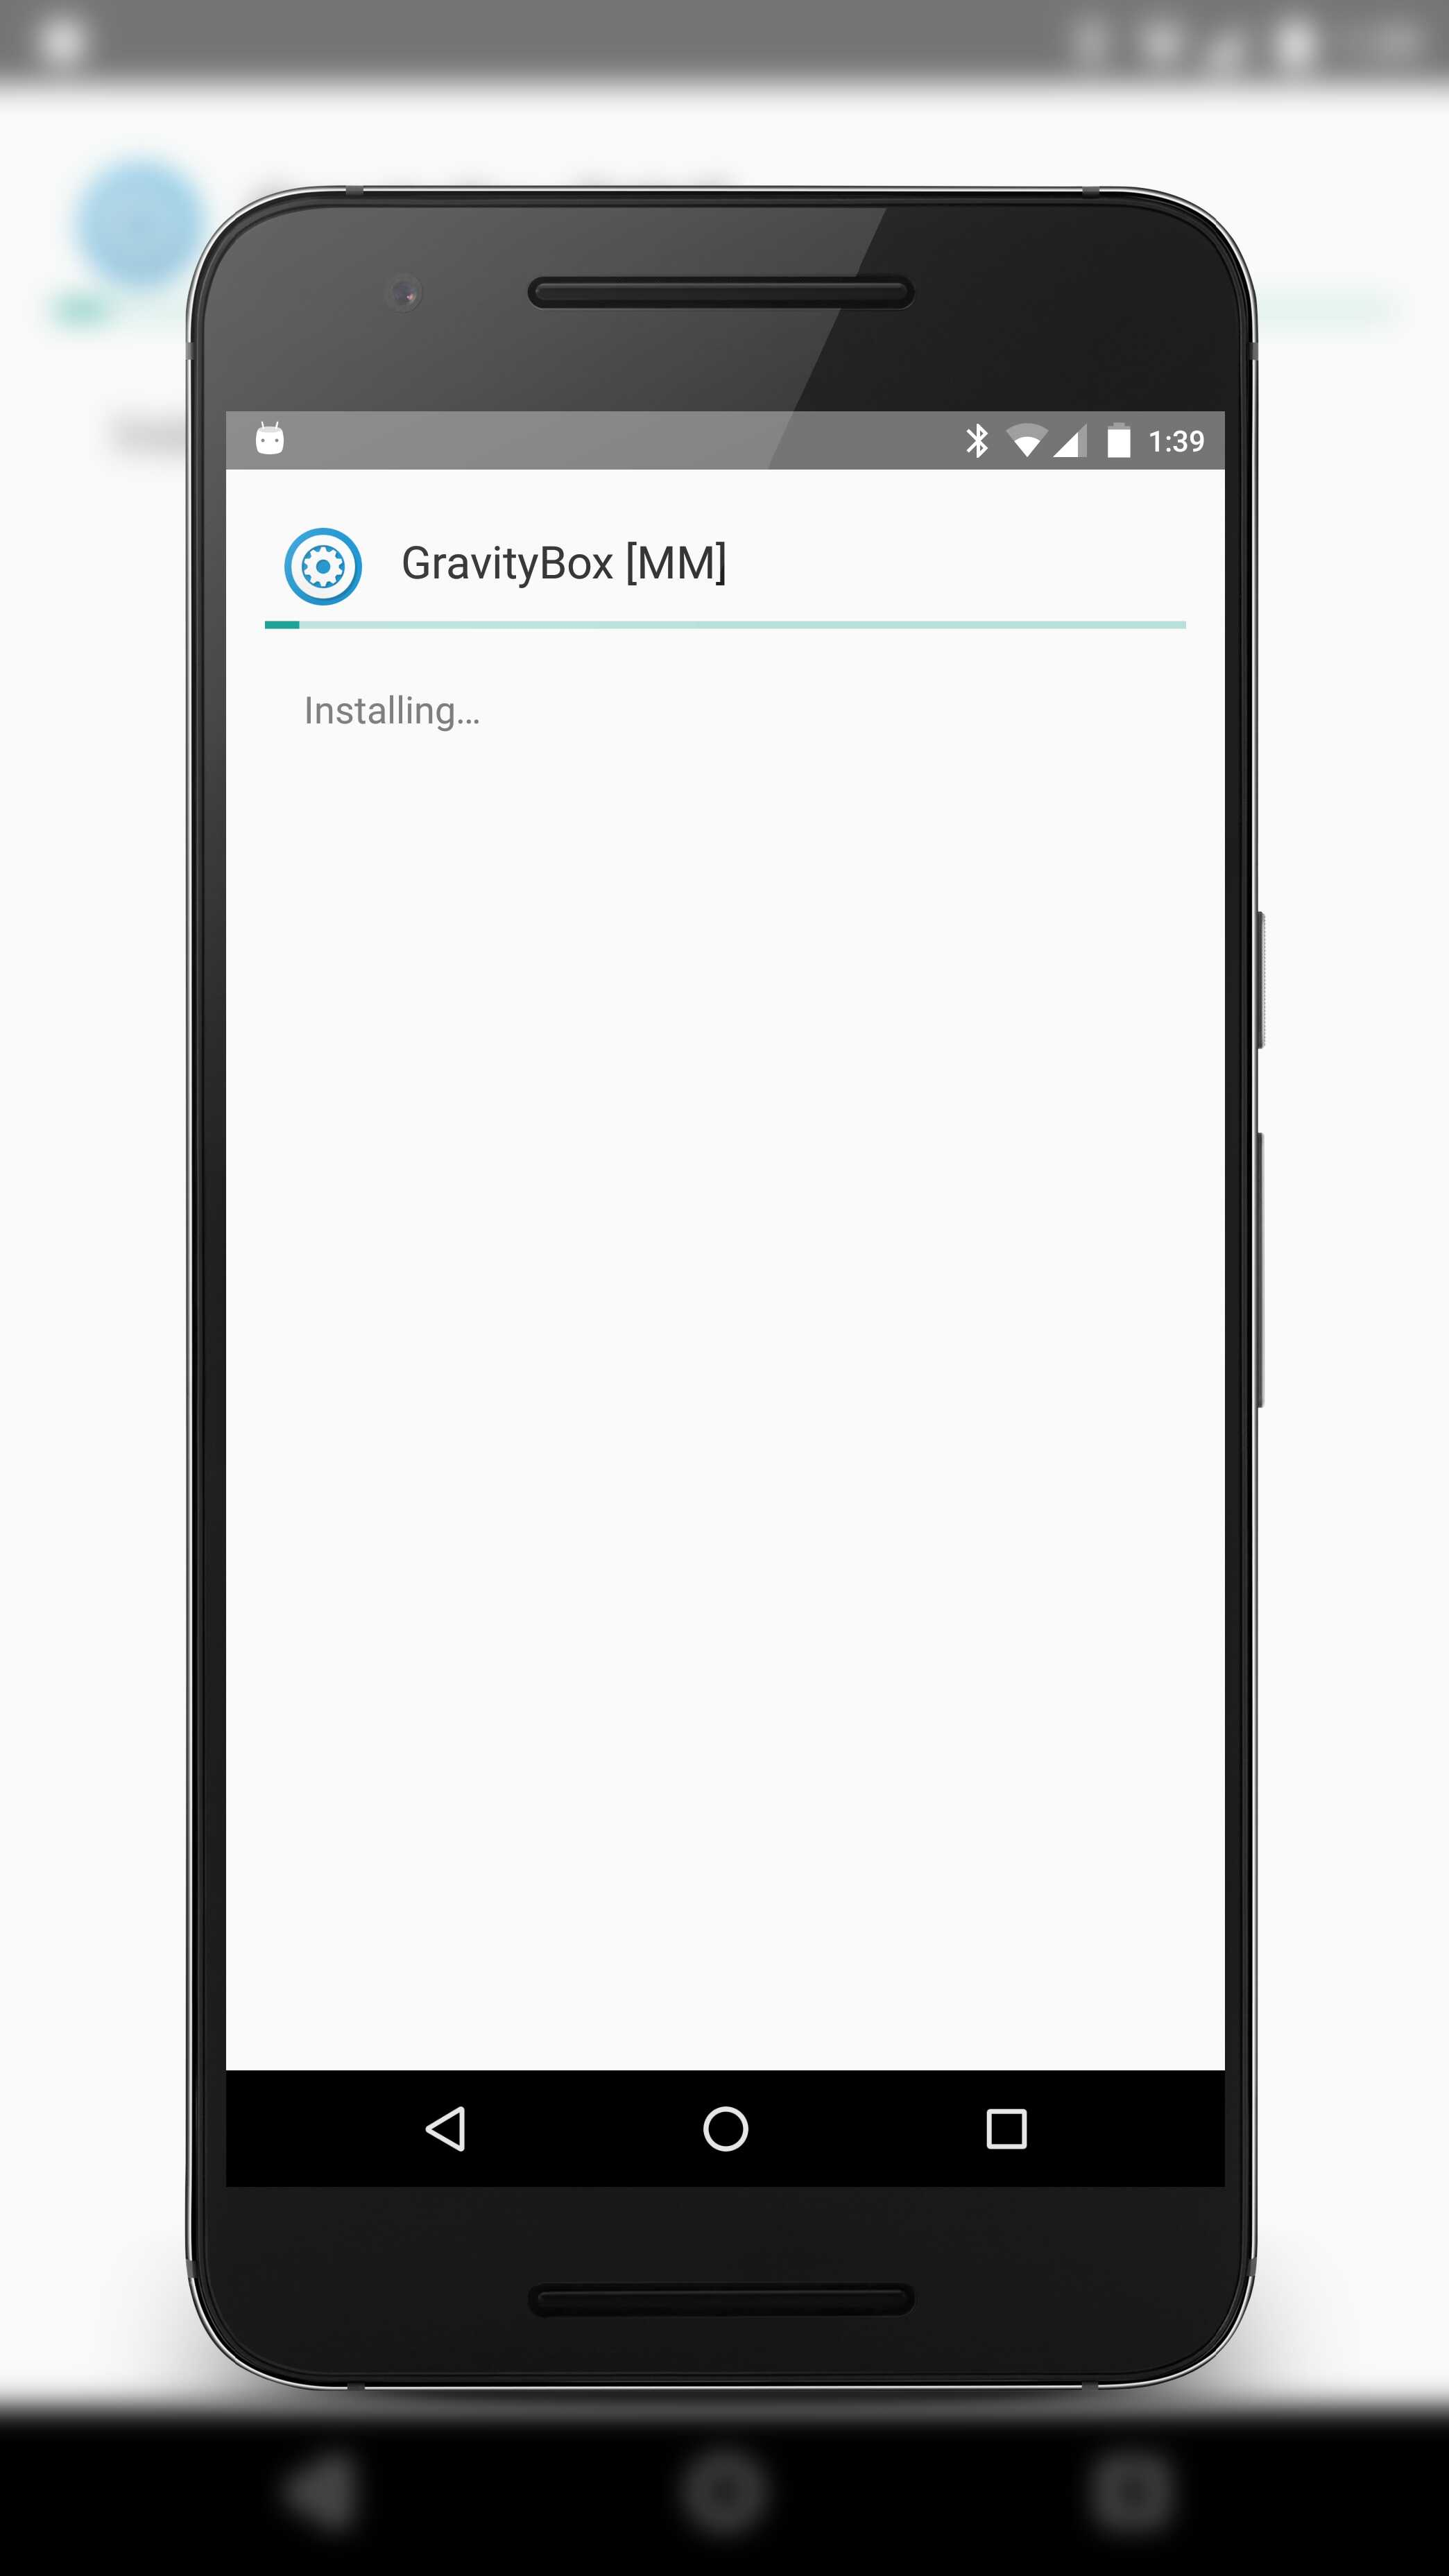 Transform your rooted device with Xposed Framework [How-To]